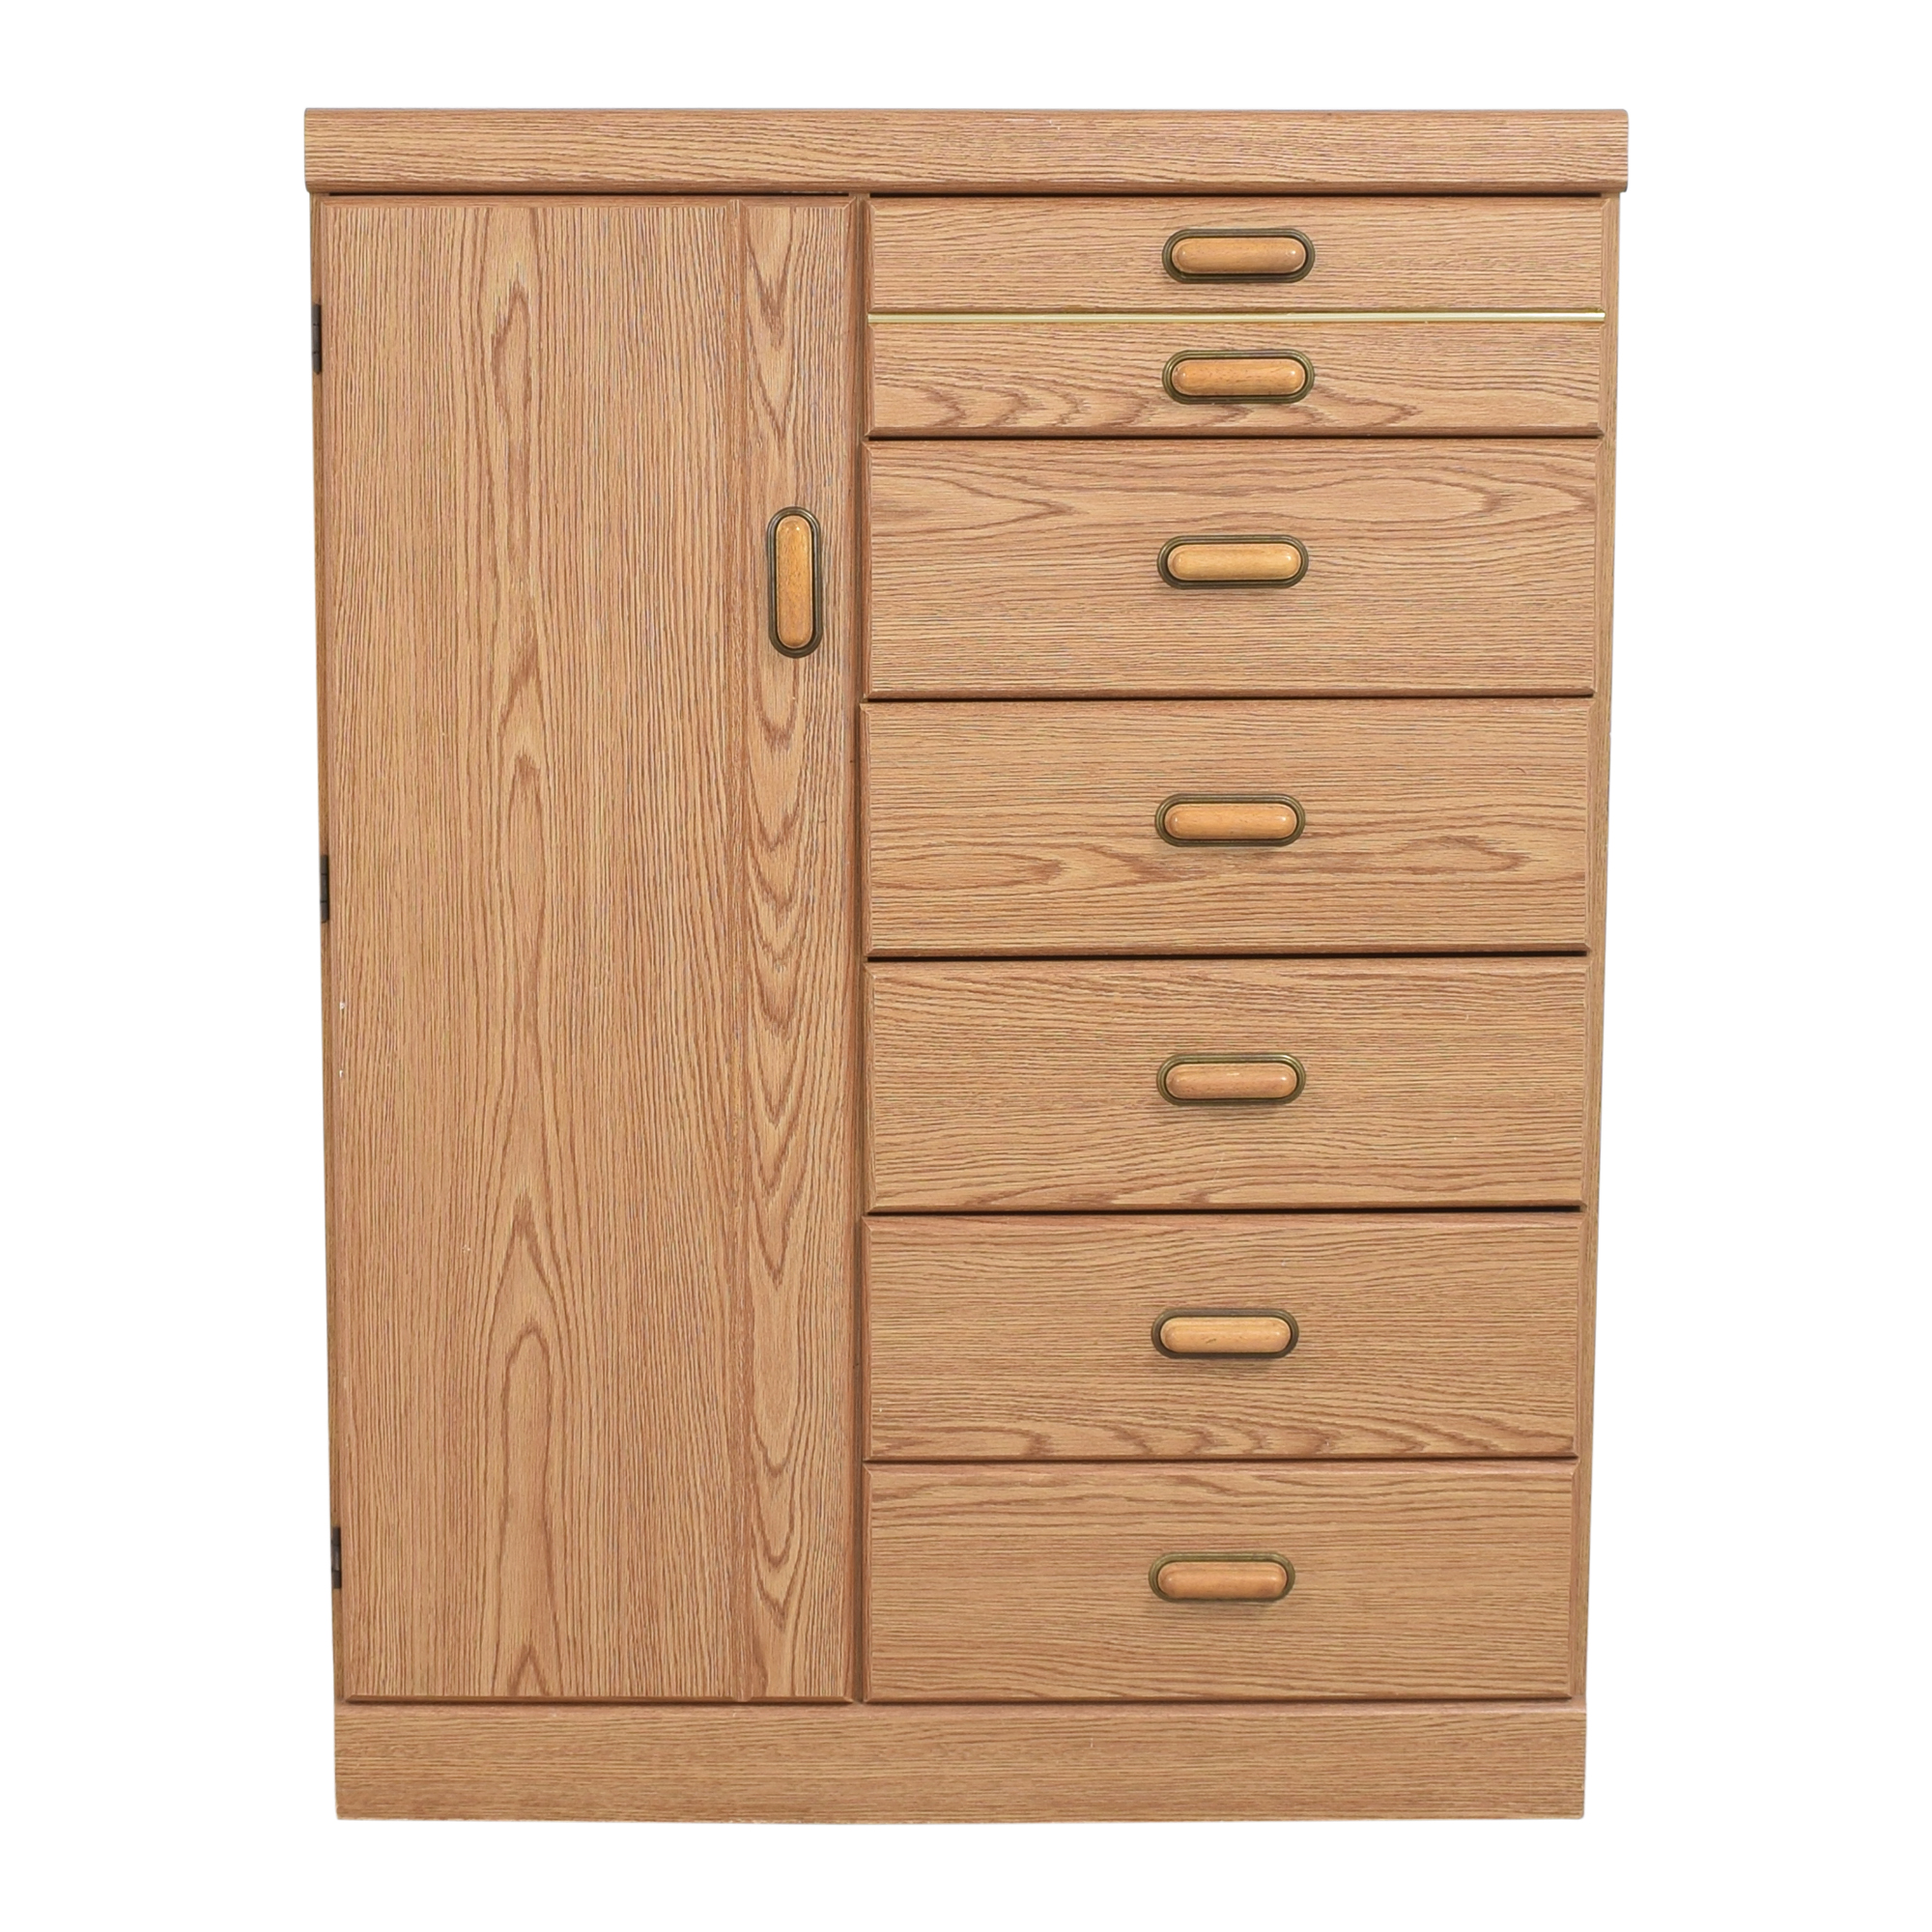 Levitz Levitz Five Drawer Wardrobe Dresser second hand